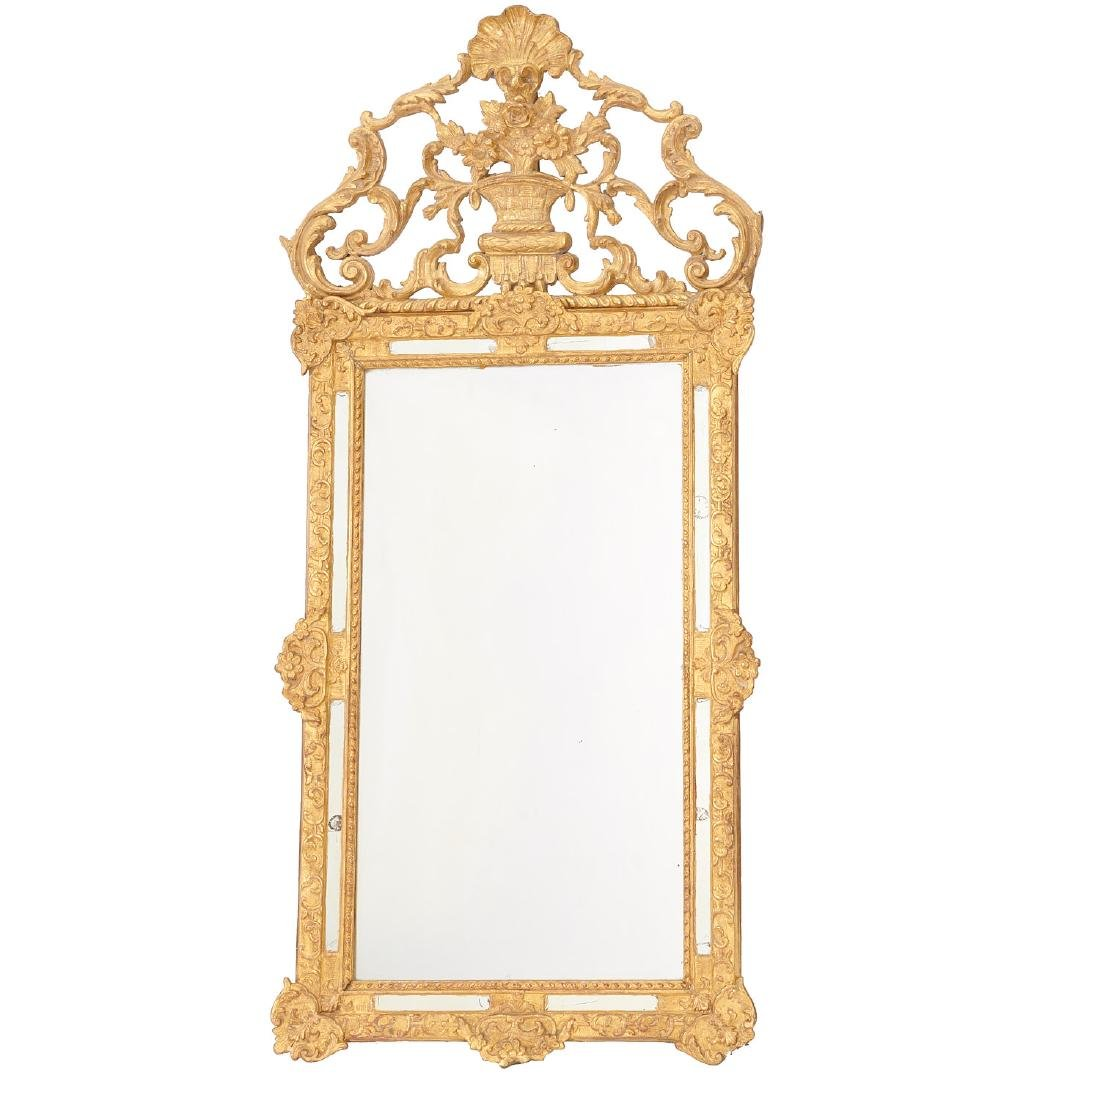 Old Regence style giltwood pier mirror